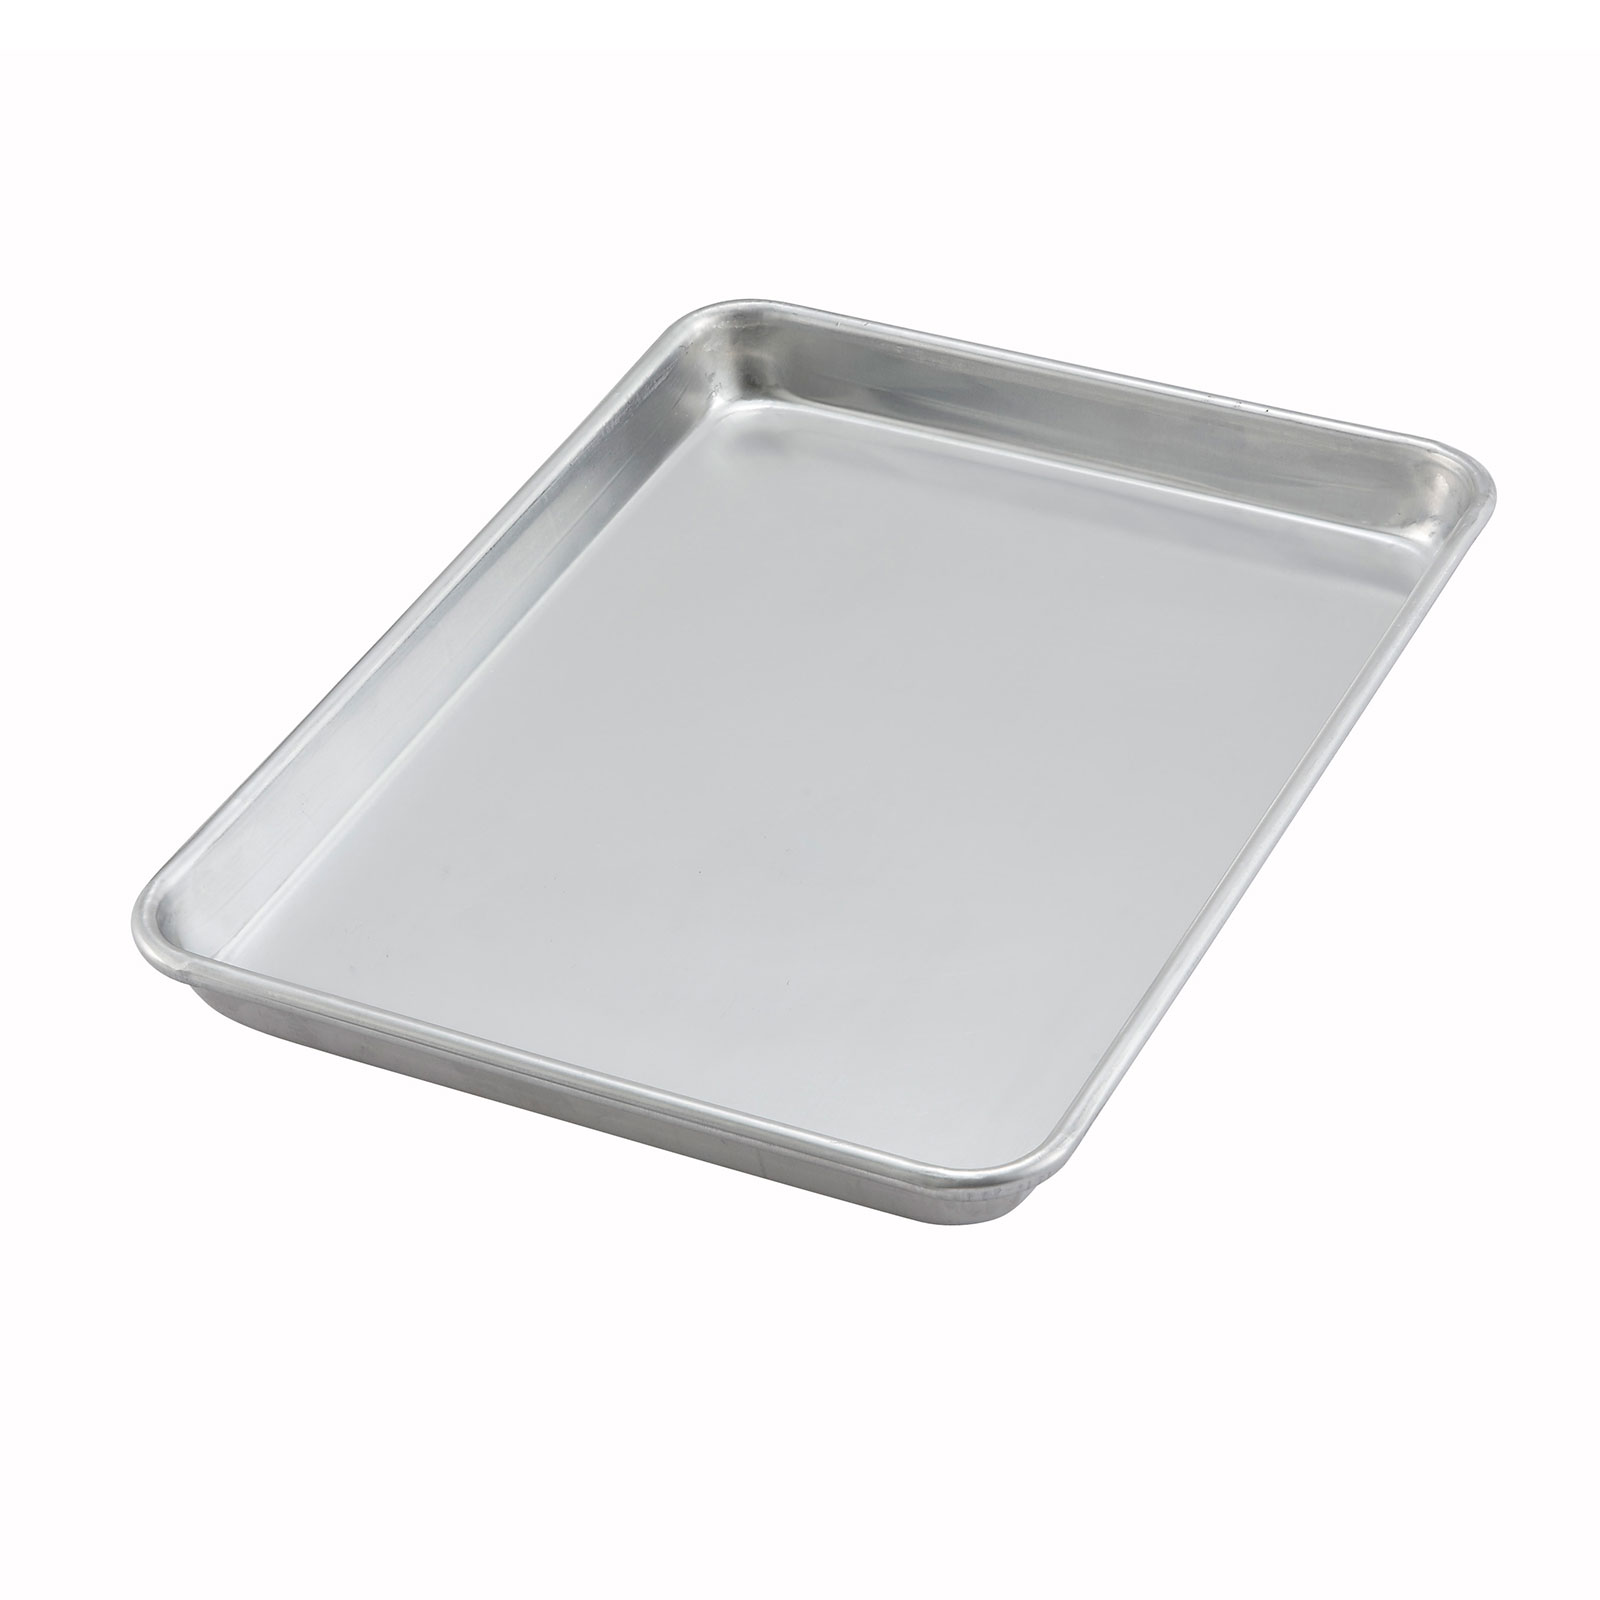 Winco ALXP-1013 bun / sheet pan